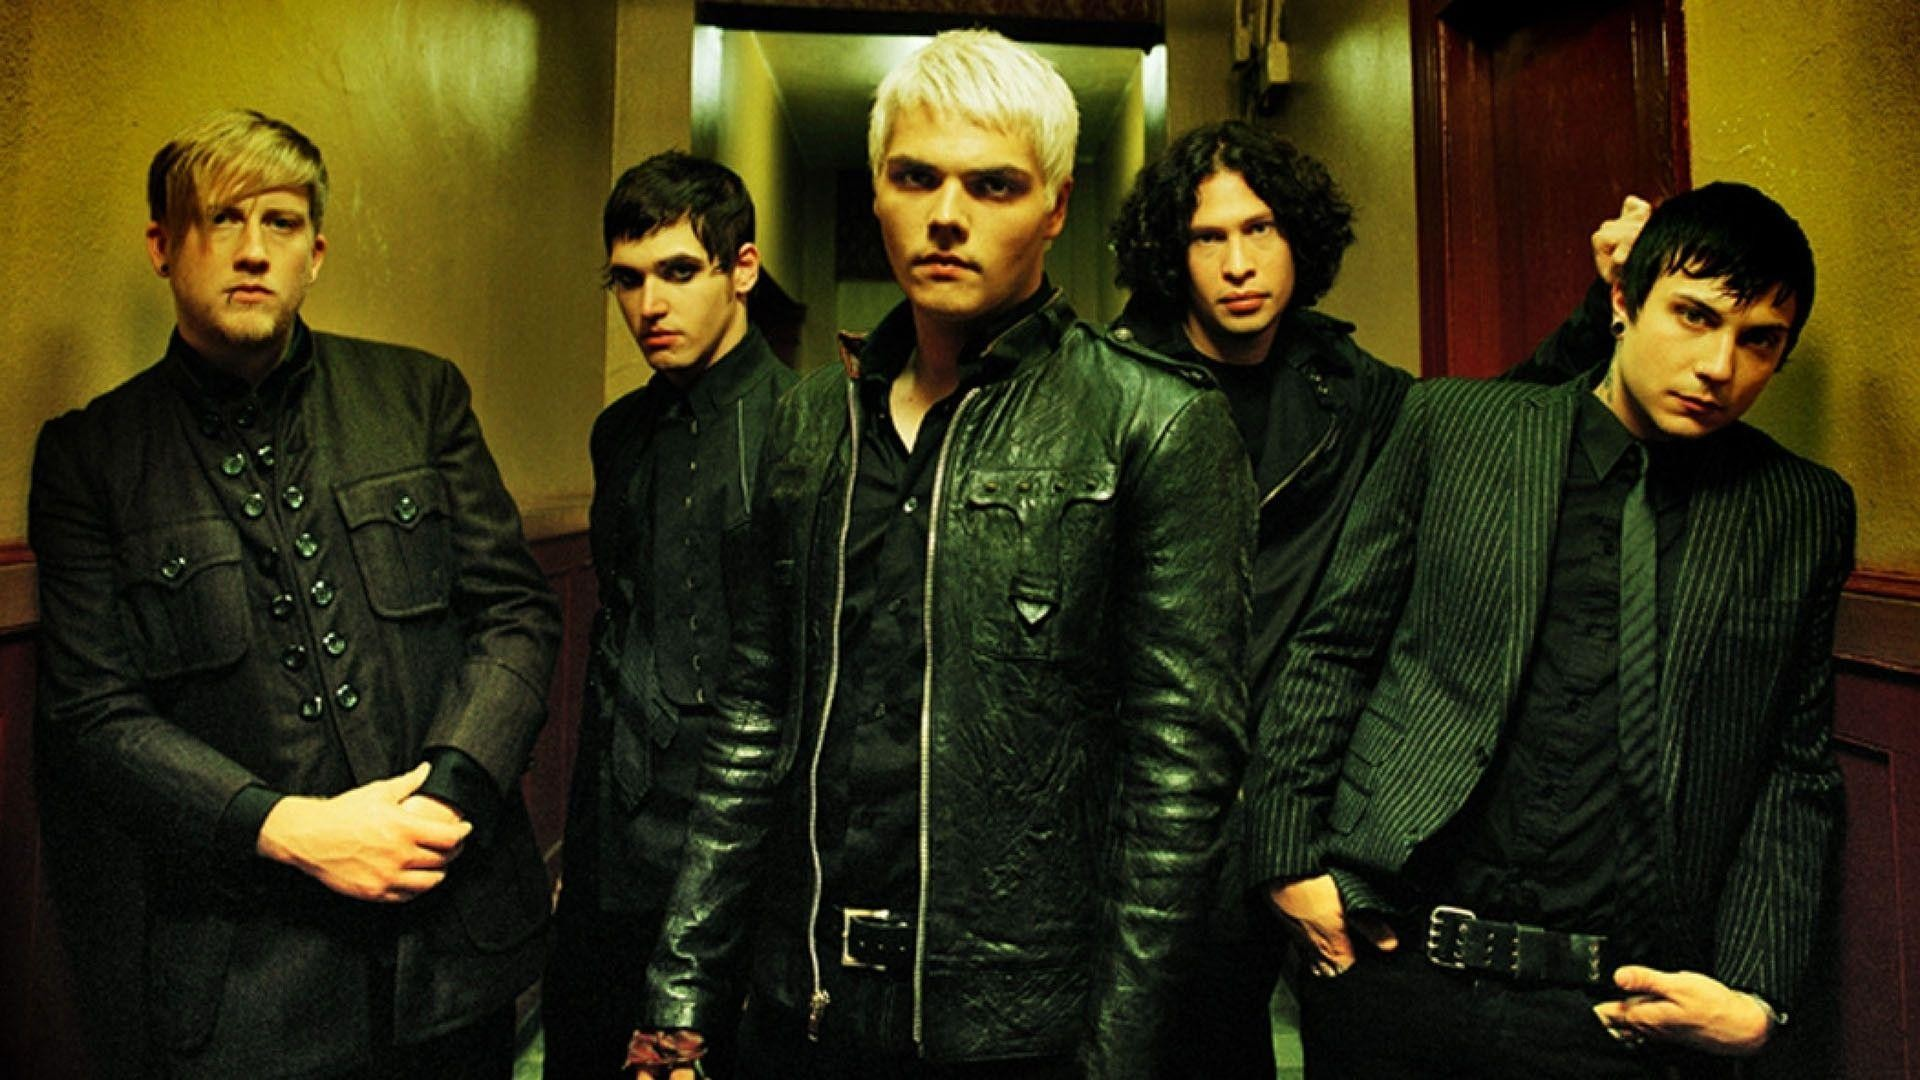 1920x1080 5 My Chemical Romance Wallpapers | My Chemical Romance Backgrounds